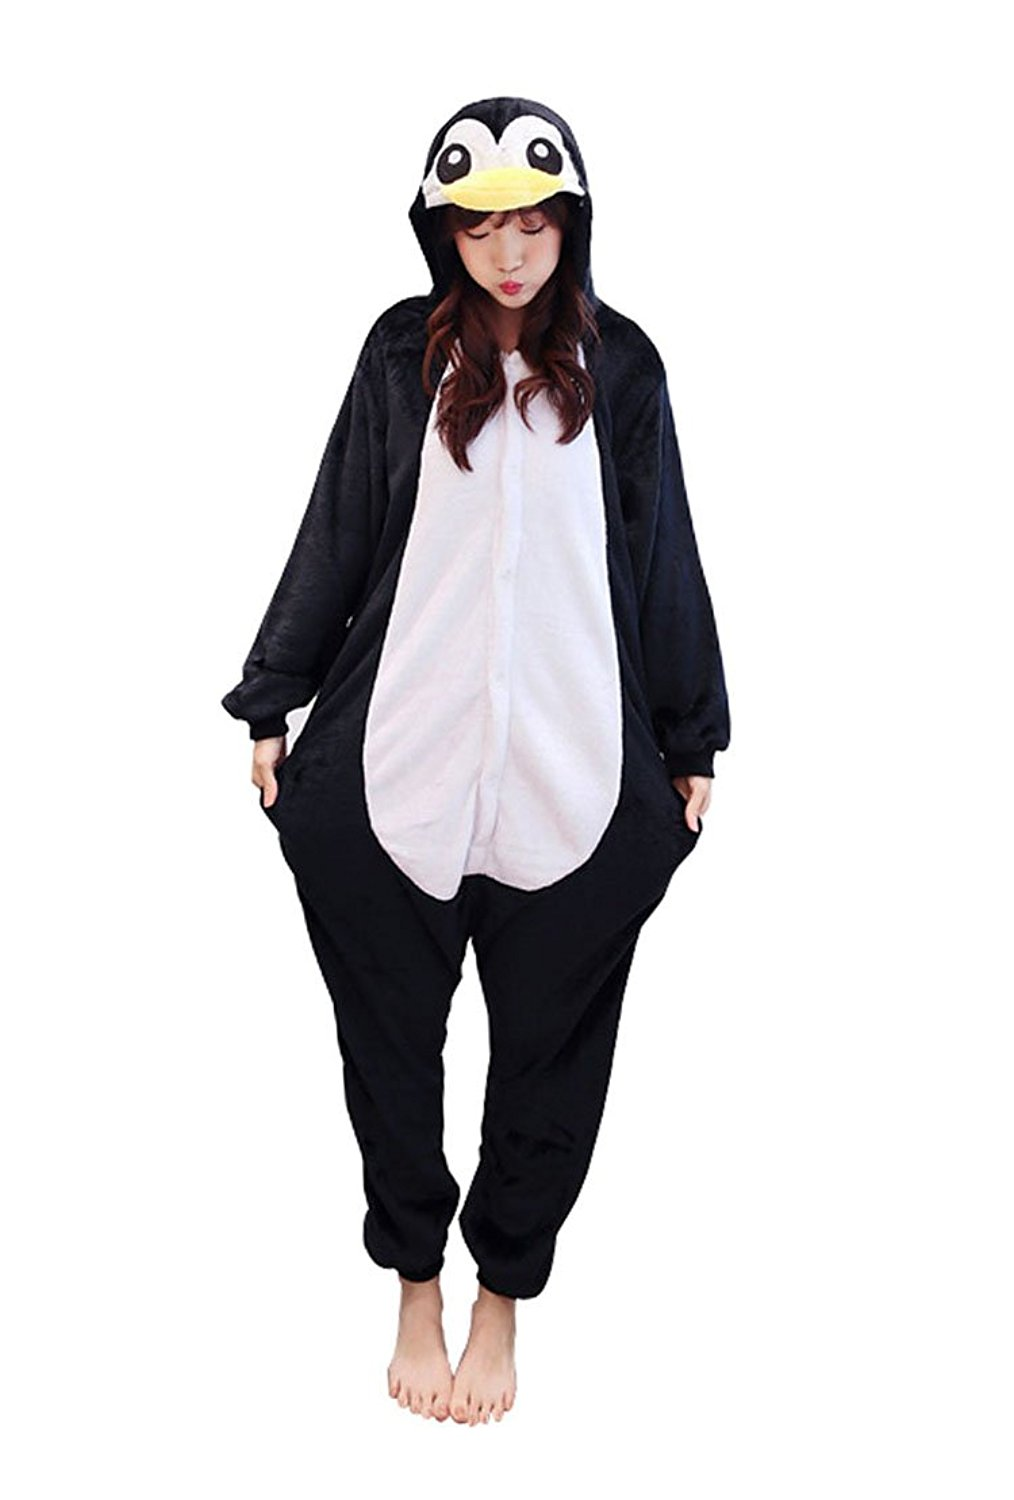 8ae6af413 Cheap Adult Penguin Pajamas